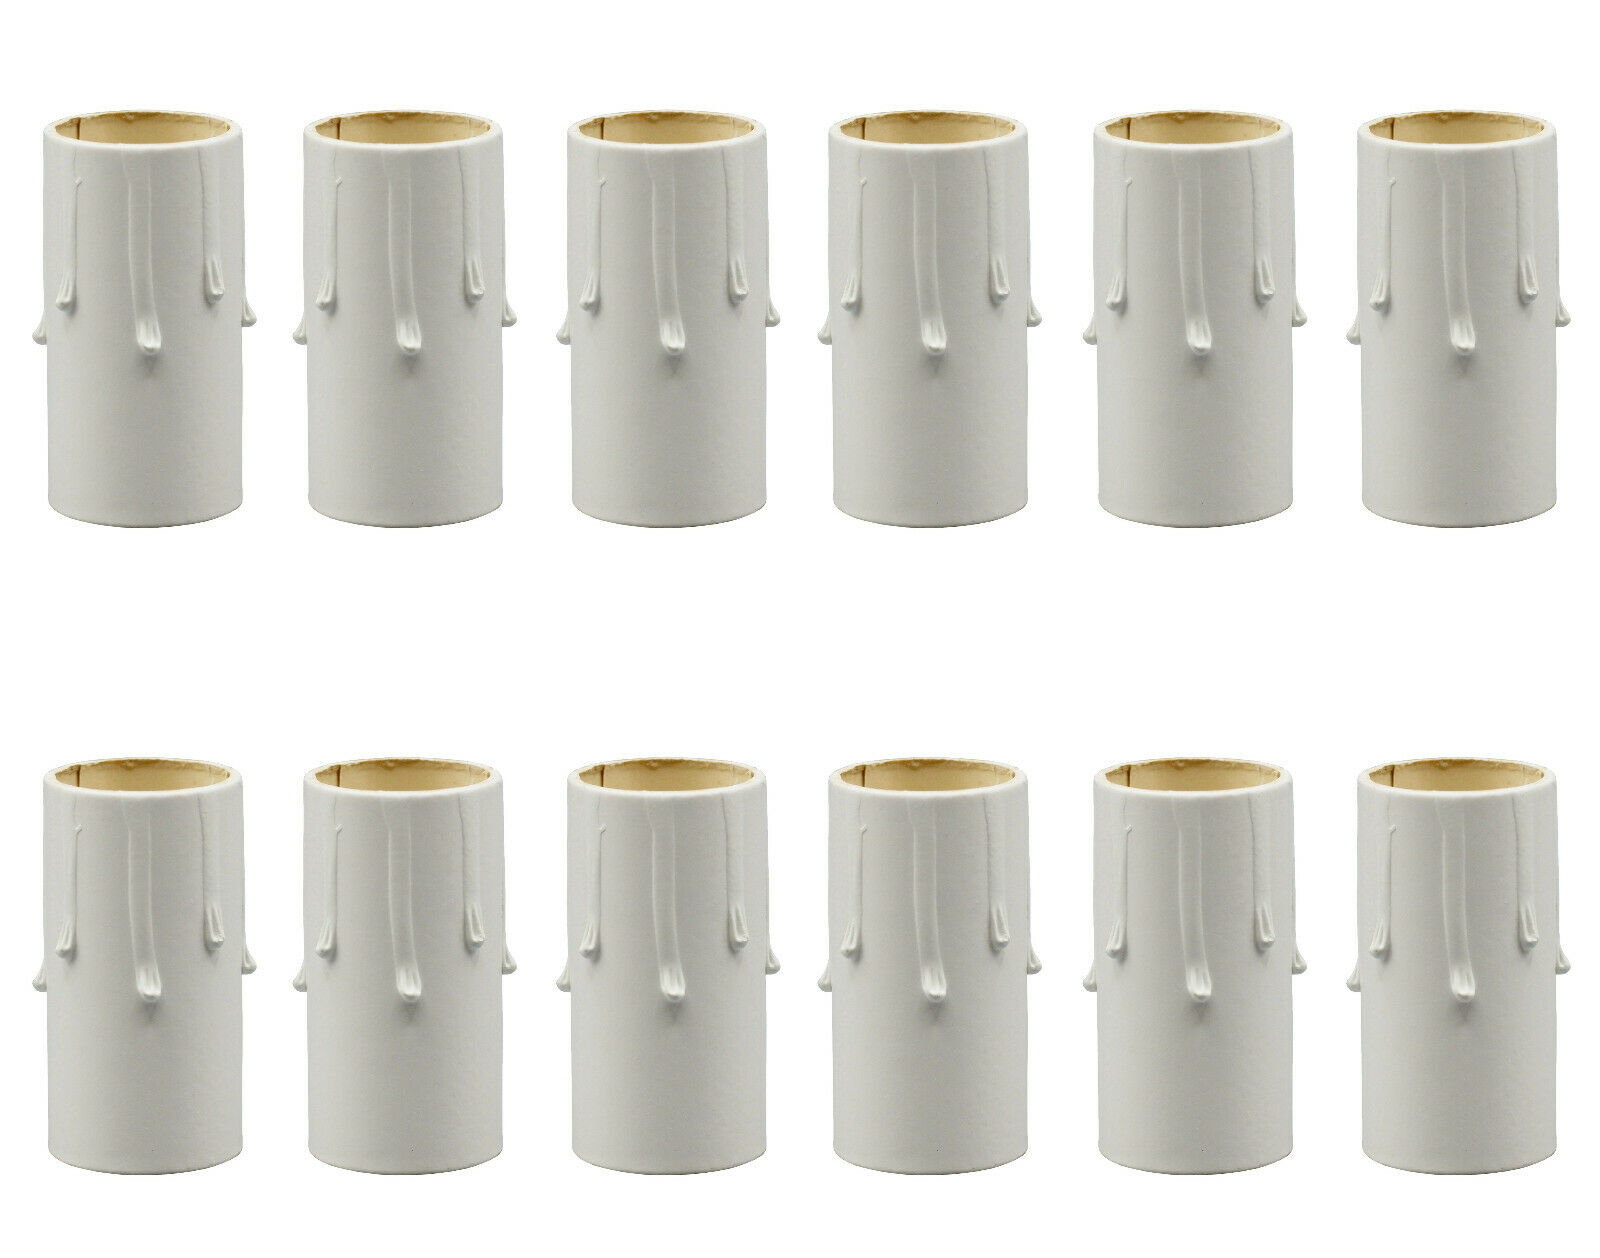 1 3/4 Inch Tall White Drip Candle Socket Covers ~ Candelabra Base, 50 Pcs Collectibles